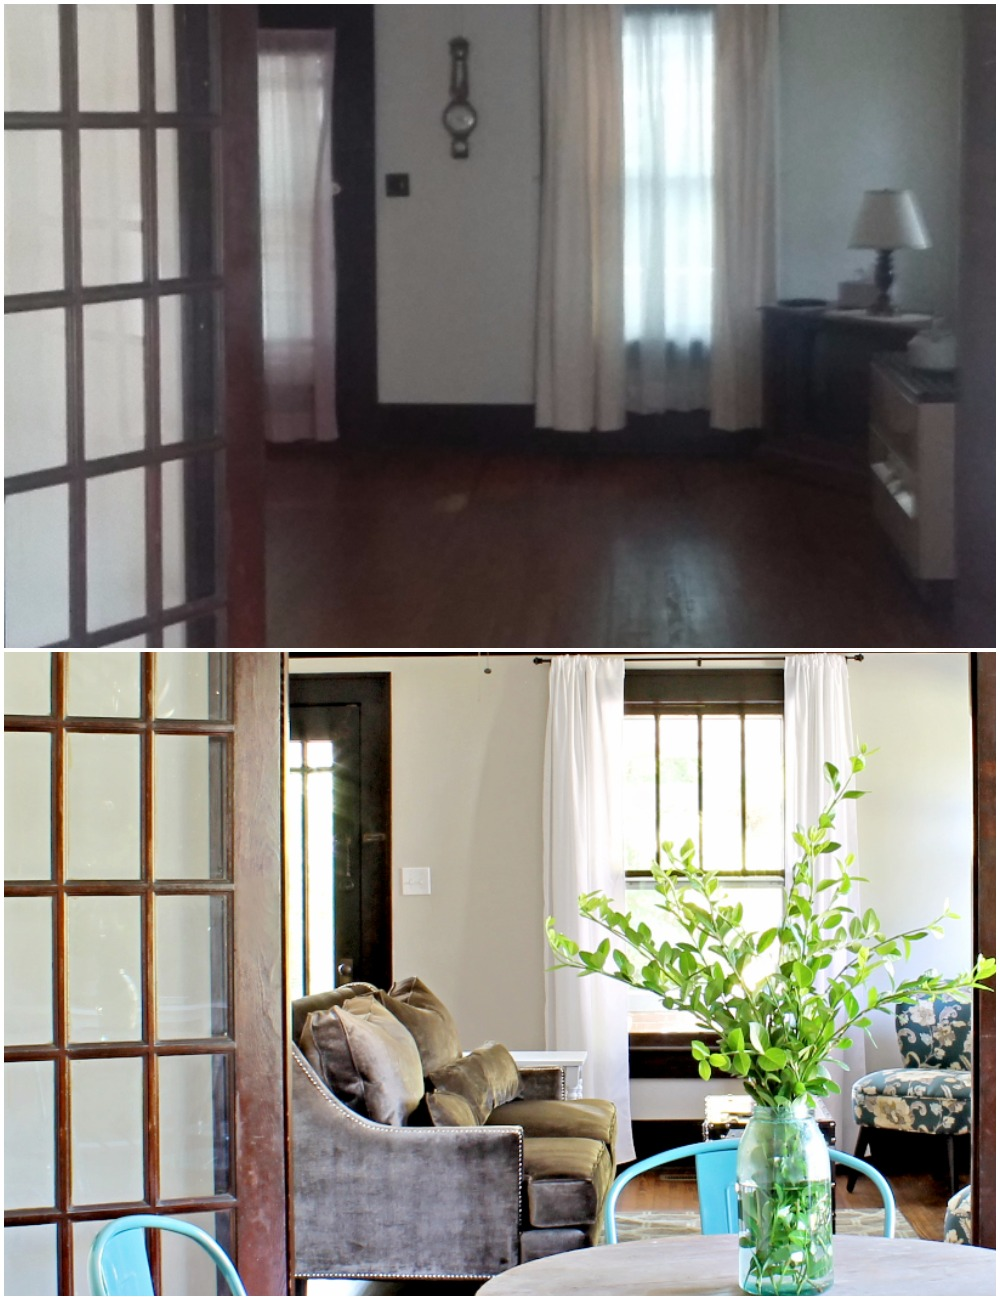 House Flipping Before and Afters - Living Room Budget Renovation Remodel, Wood Trim Paint Colors - Sherwin Williams Repose Gray (3).jpg